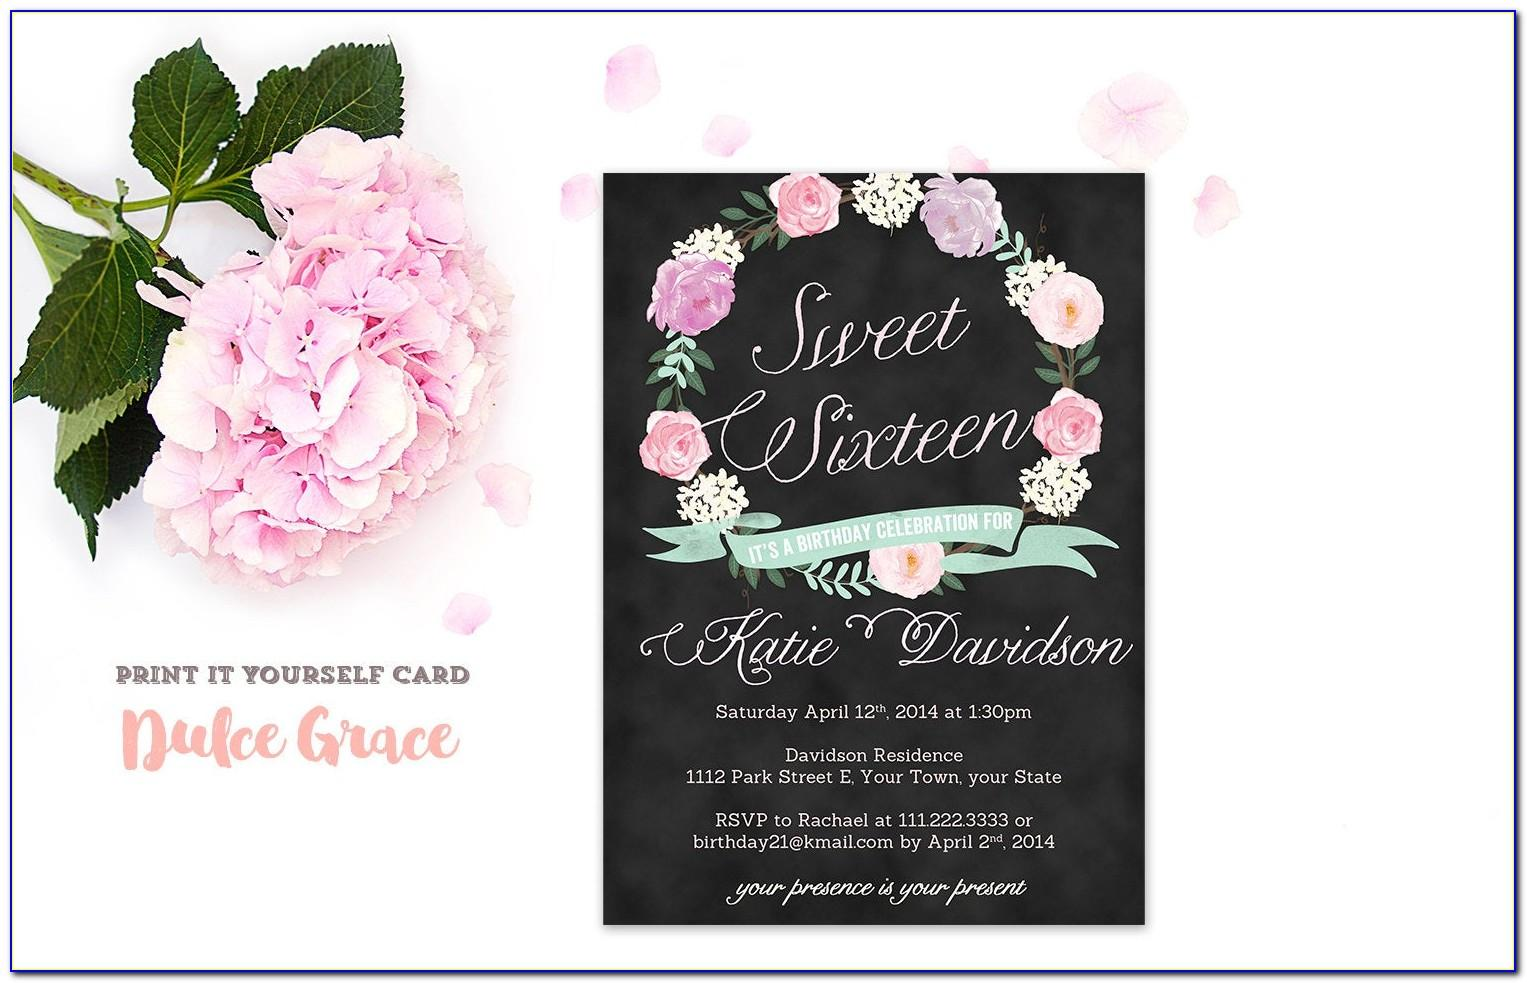 Sweet Sixteen Invitations Templates Free